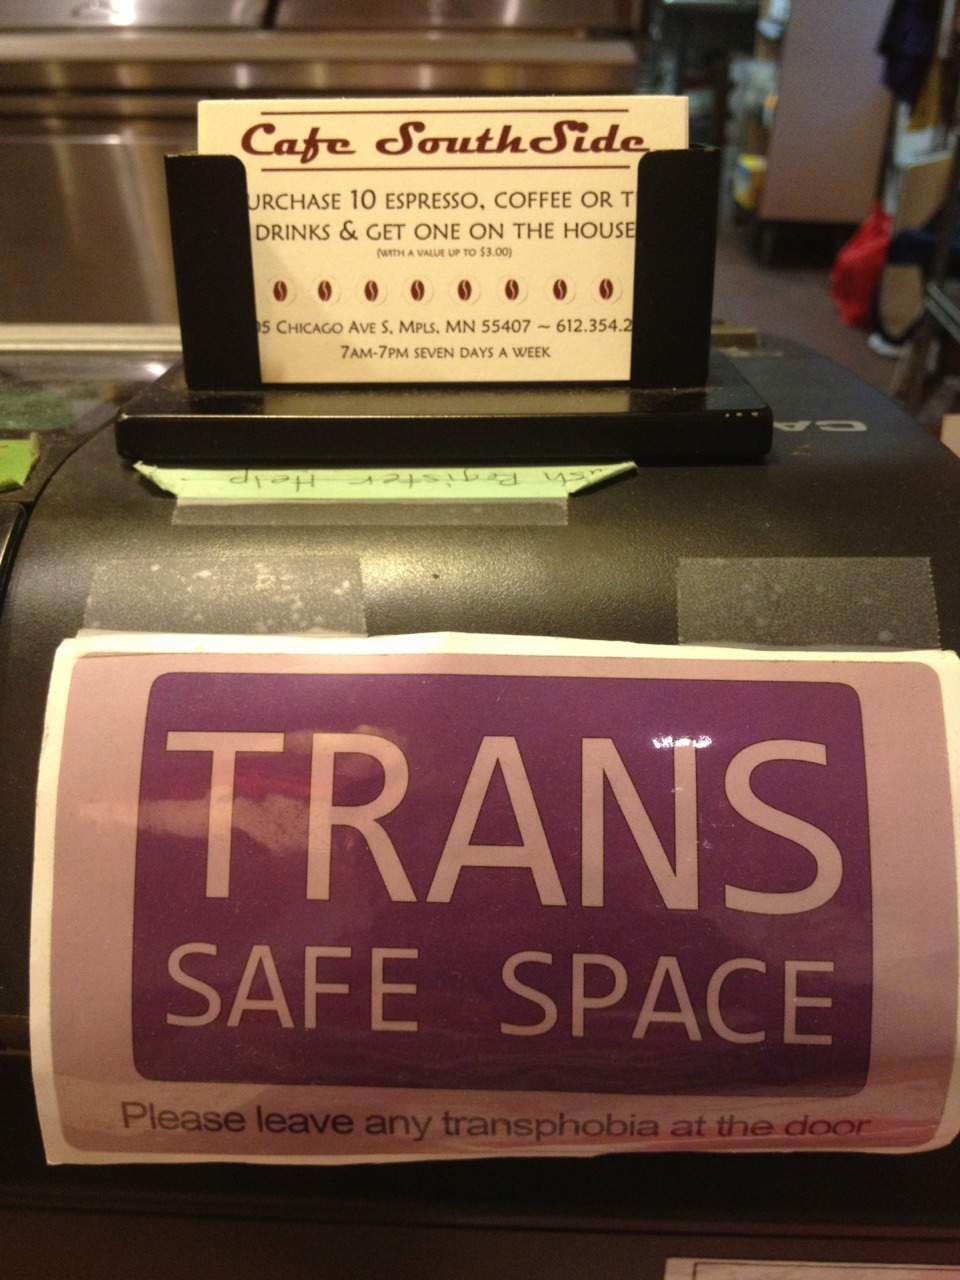 Love Cafe Southside! ** PLEASE LEAVE TRANSPHOBIA AT THE DOOR**